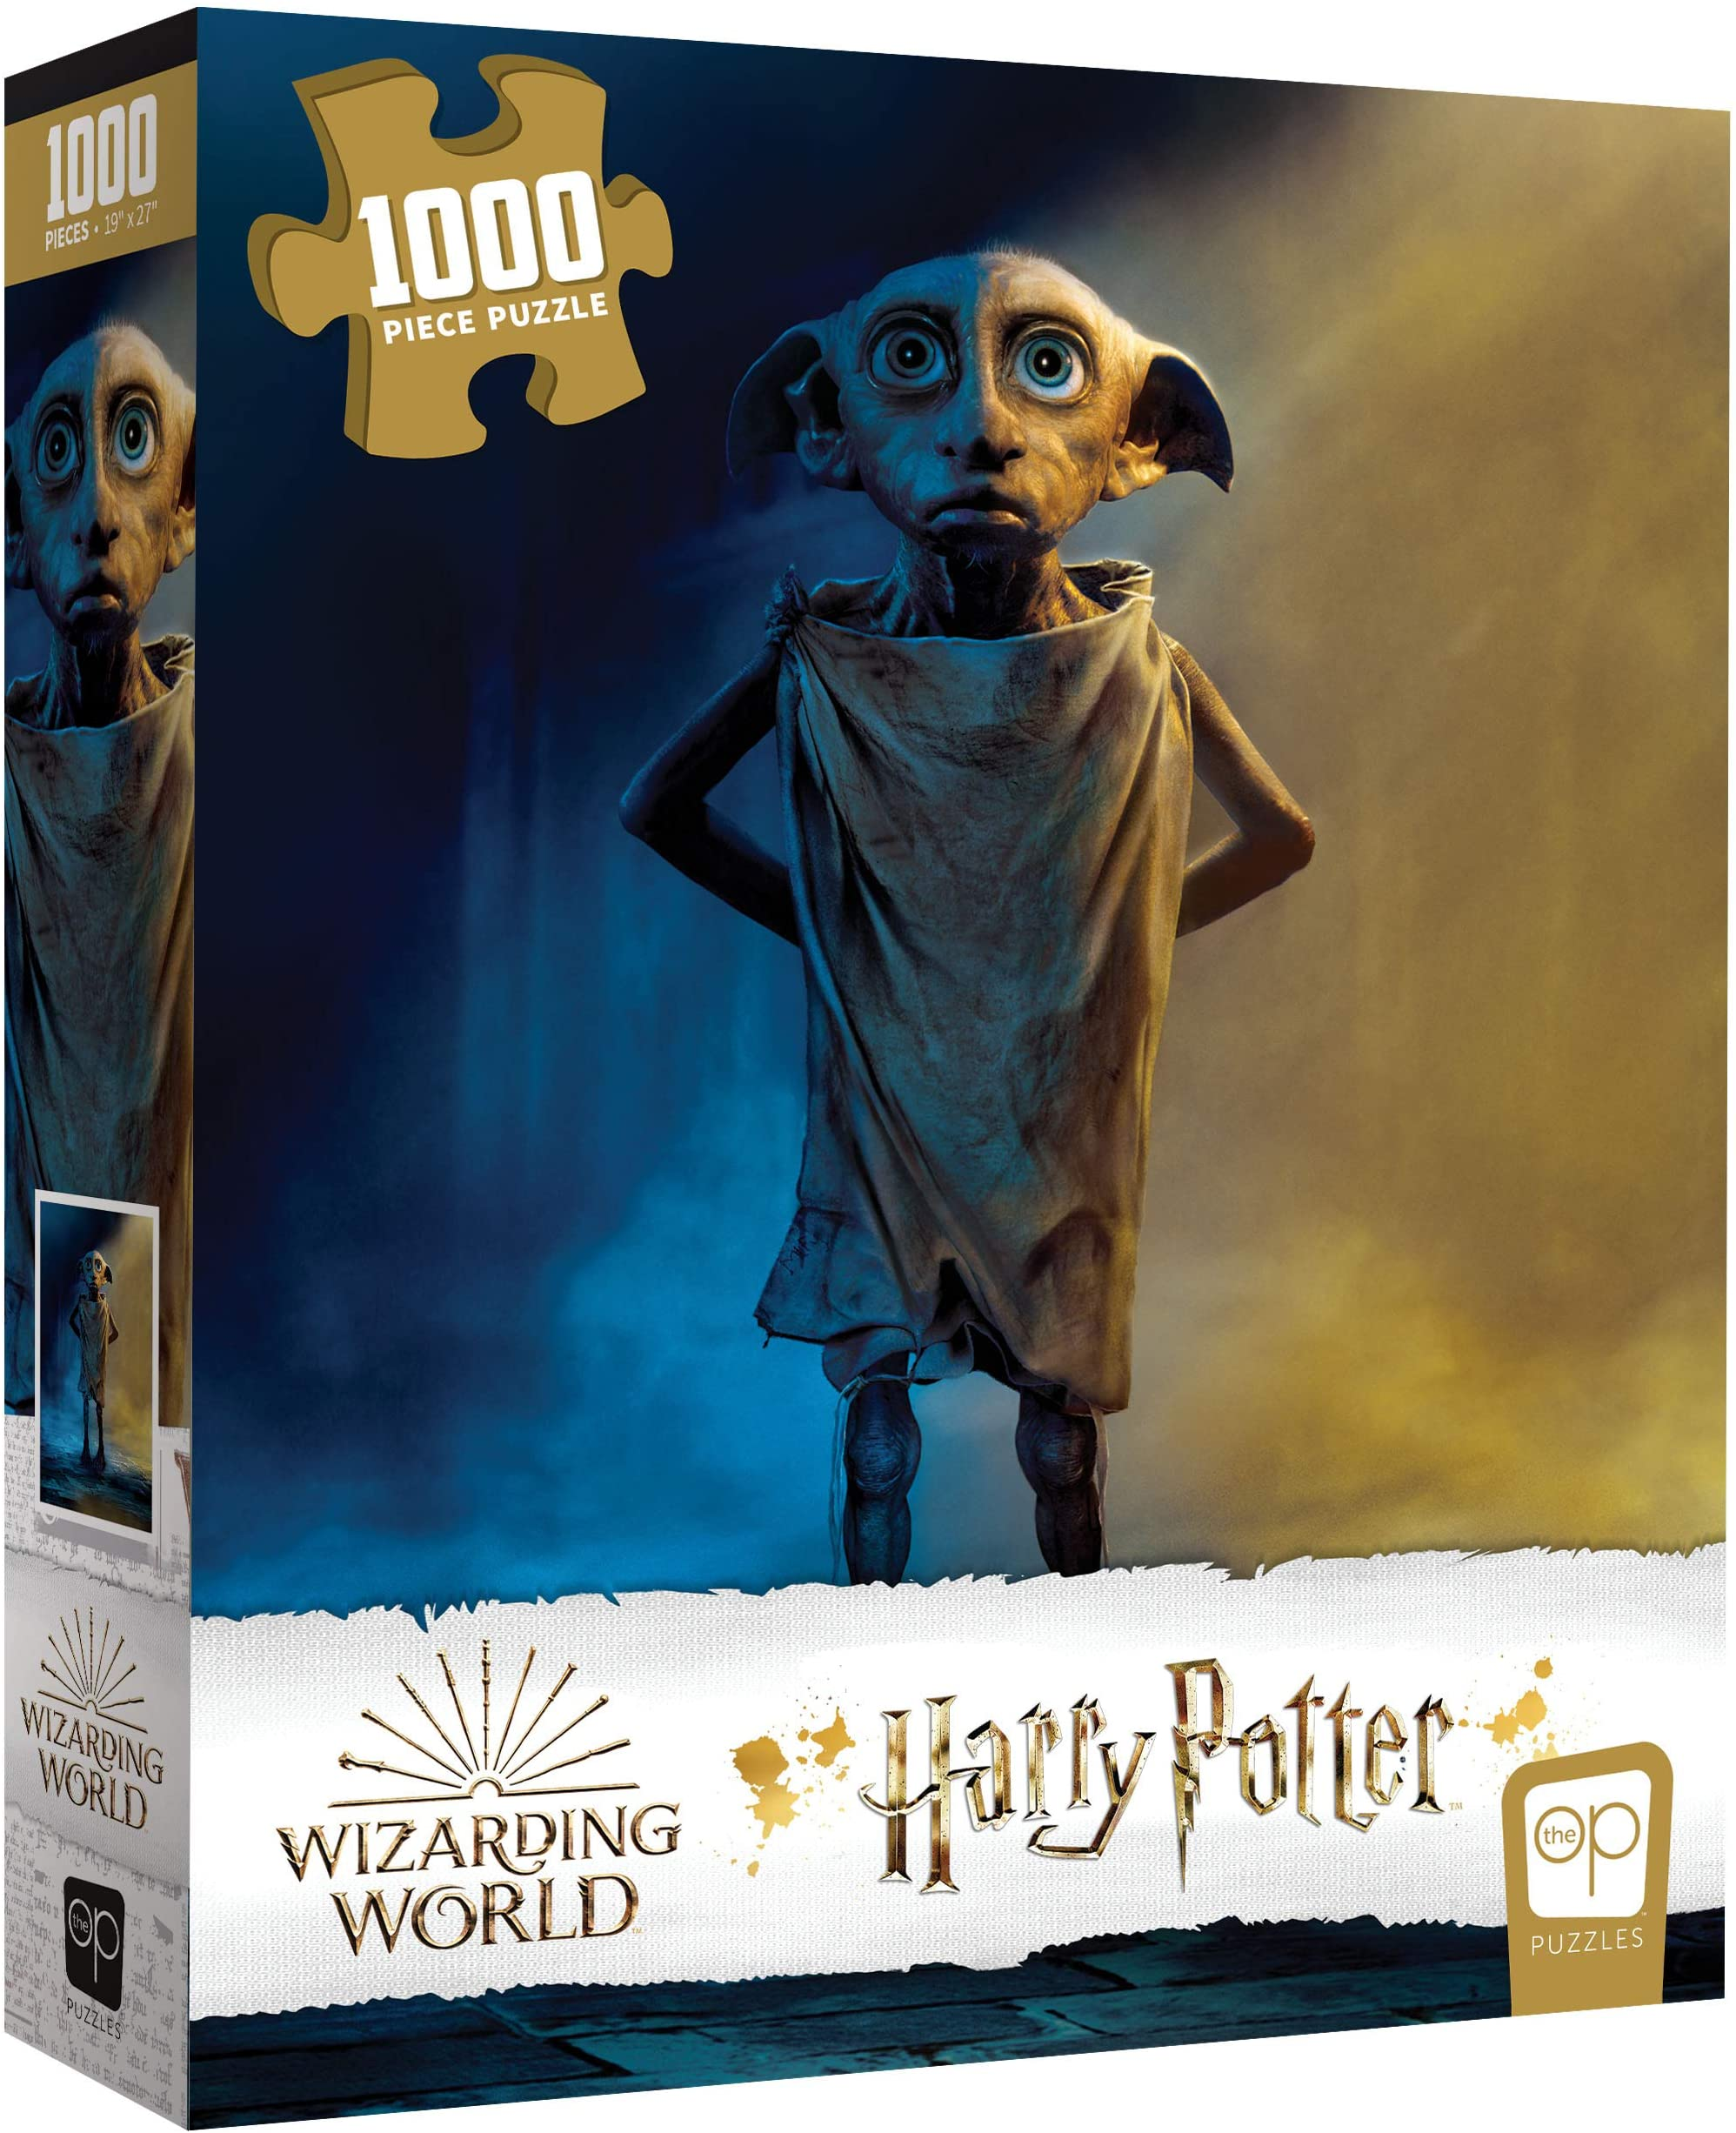 USAOPOLY Harry Potter Dobby 1000 Piece Jigsaw Puzzle | Officially Licensed Harry Potter Puzzle | Collectible Puzzle Featuring Dobby The House Elf from Harry Potter Films